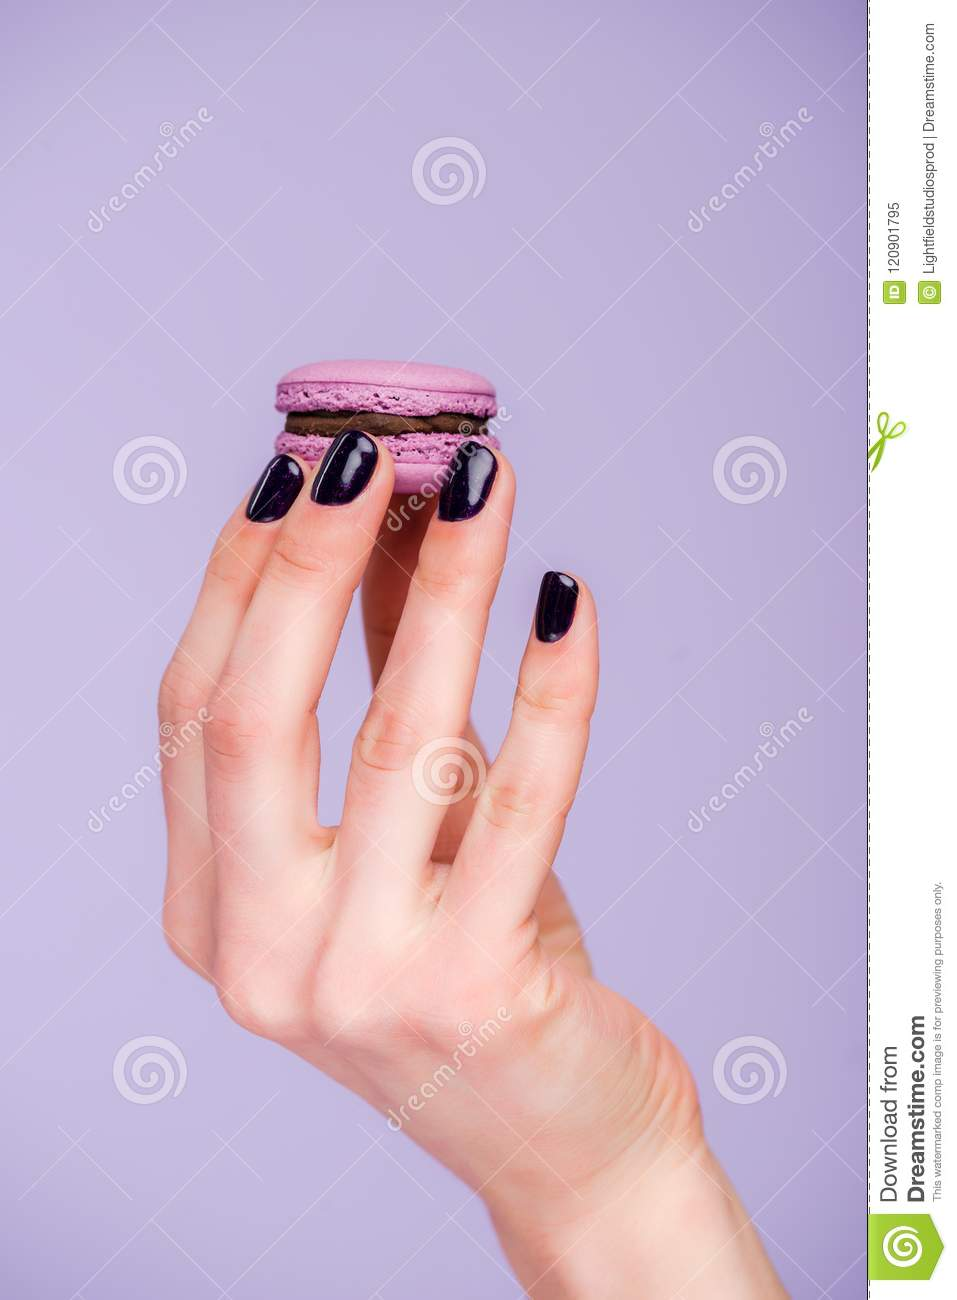 Female hand with macaron